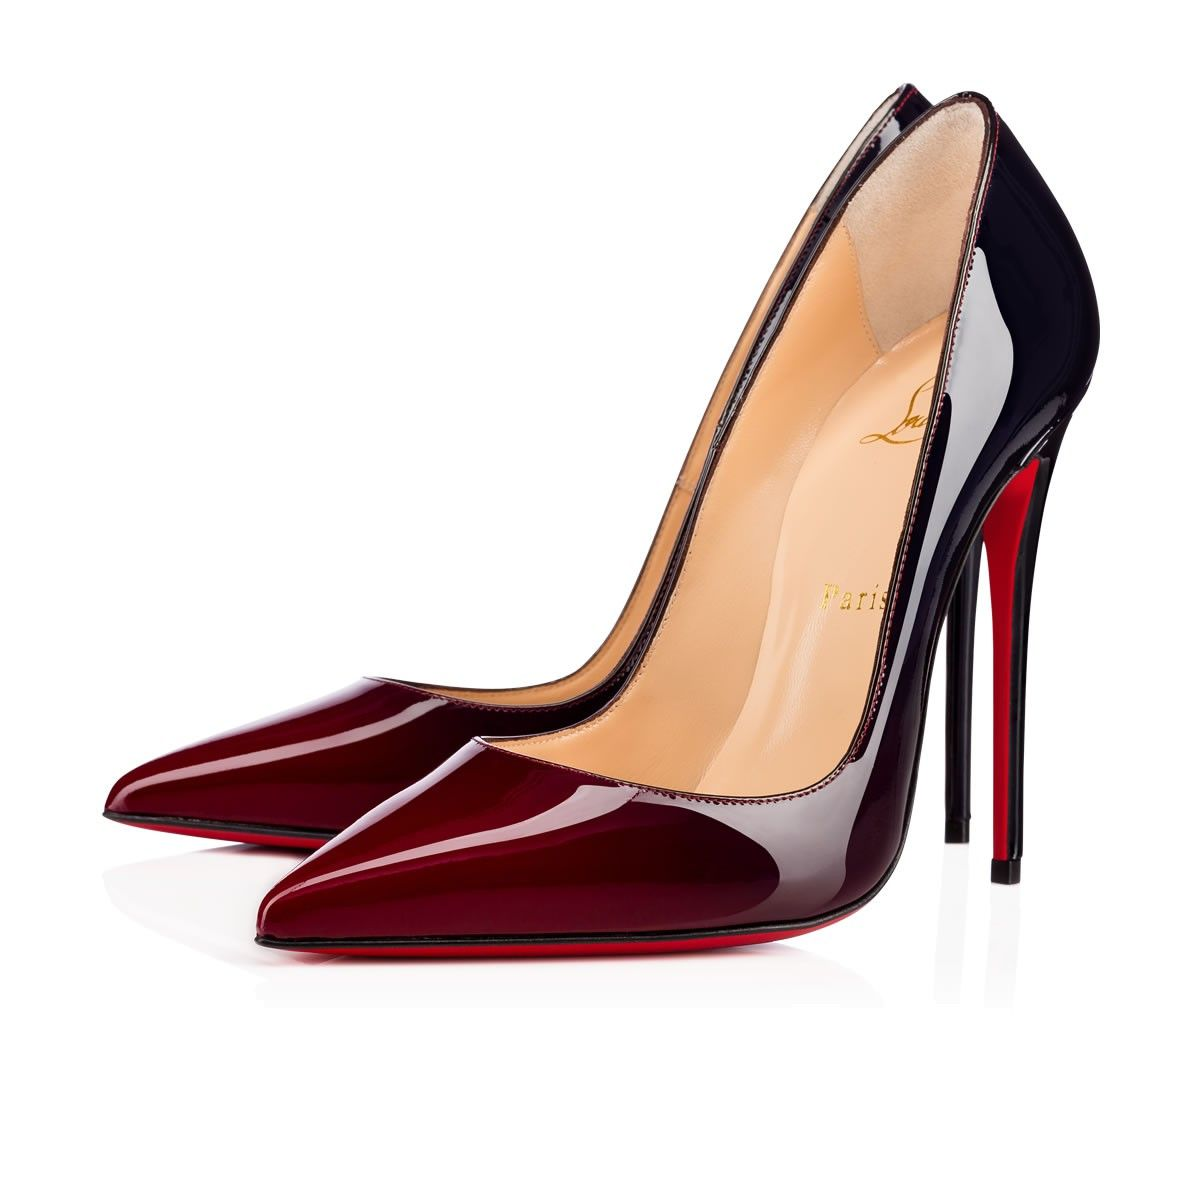 meilleur pas cher bf112 6fb7a CHRISTIAN LOUBOUTIN So Kate Patent Degrade 120 Carmin-Night ...